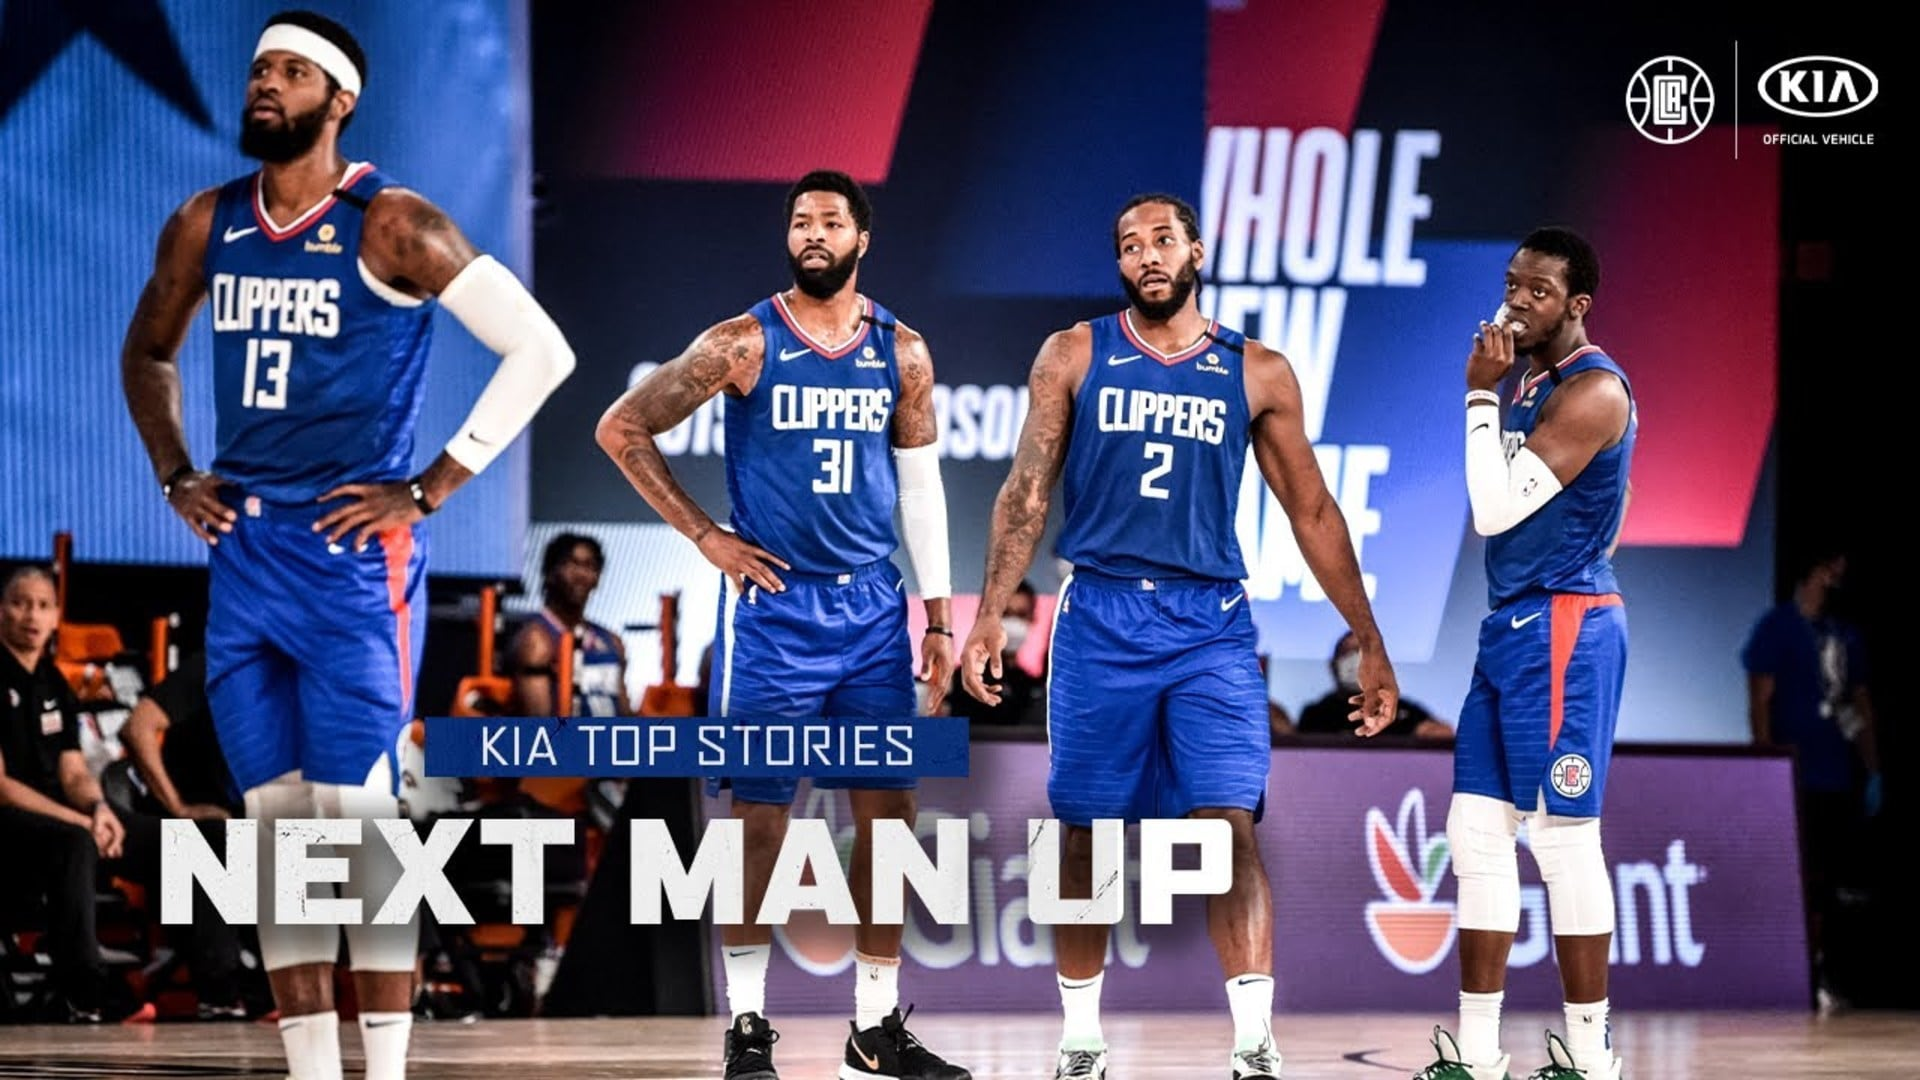 The Clippers' Next Man Up Mentality | Kia Top Stories